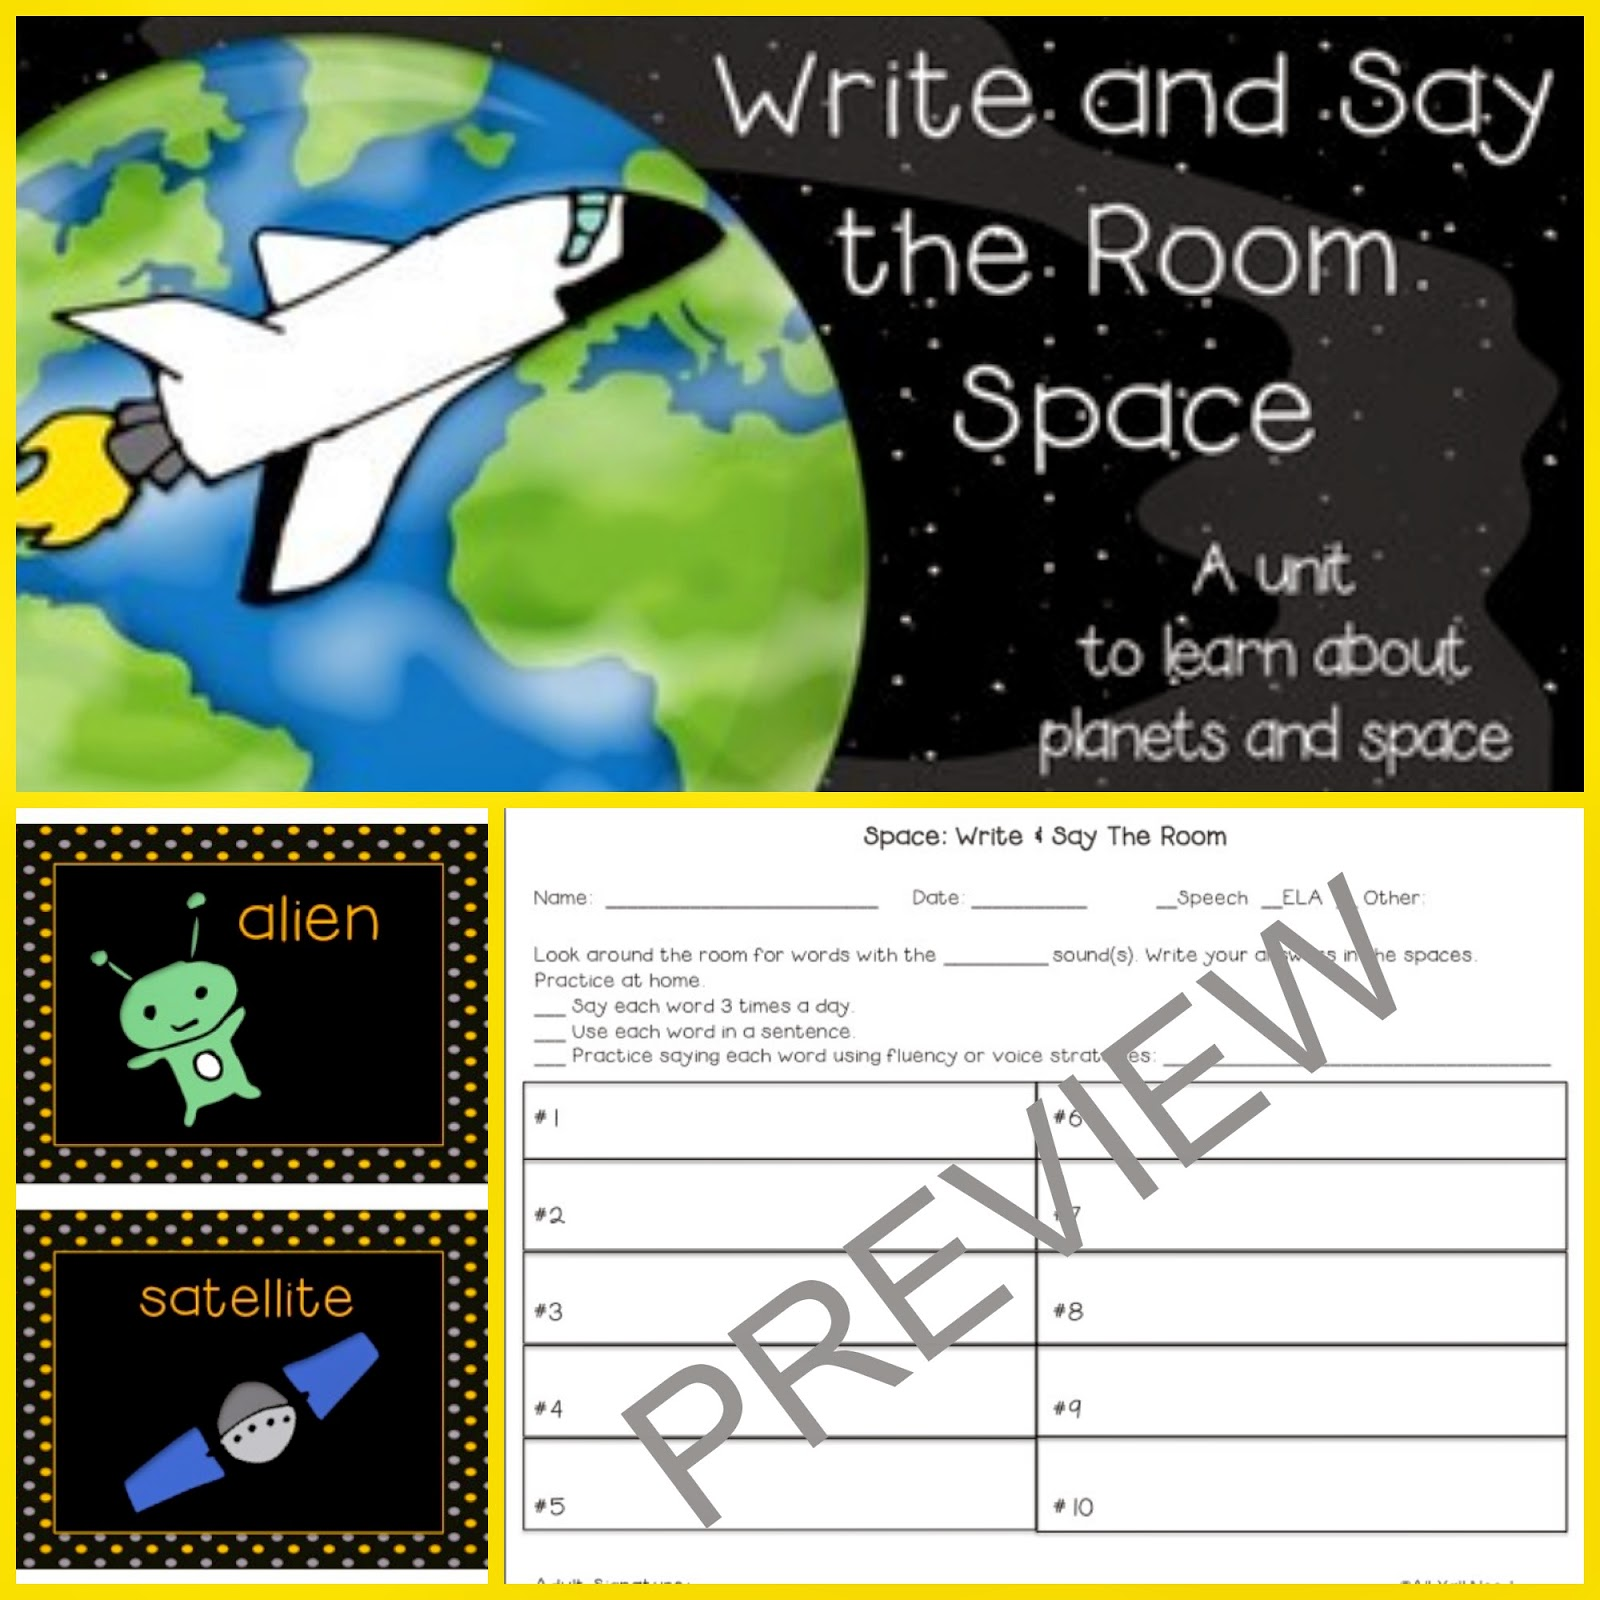 Write and Say the Room: Space by All Y'all Need